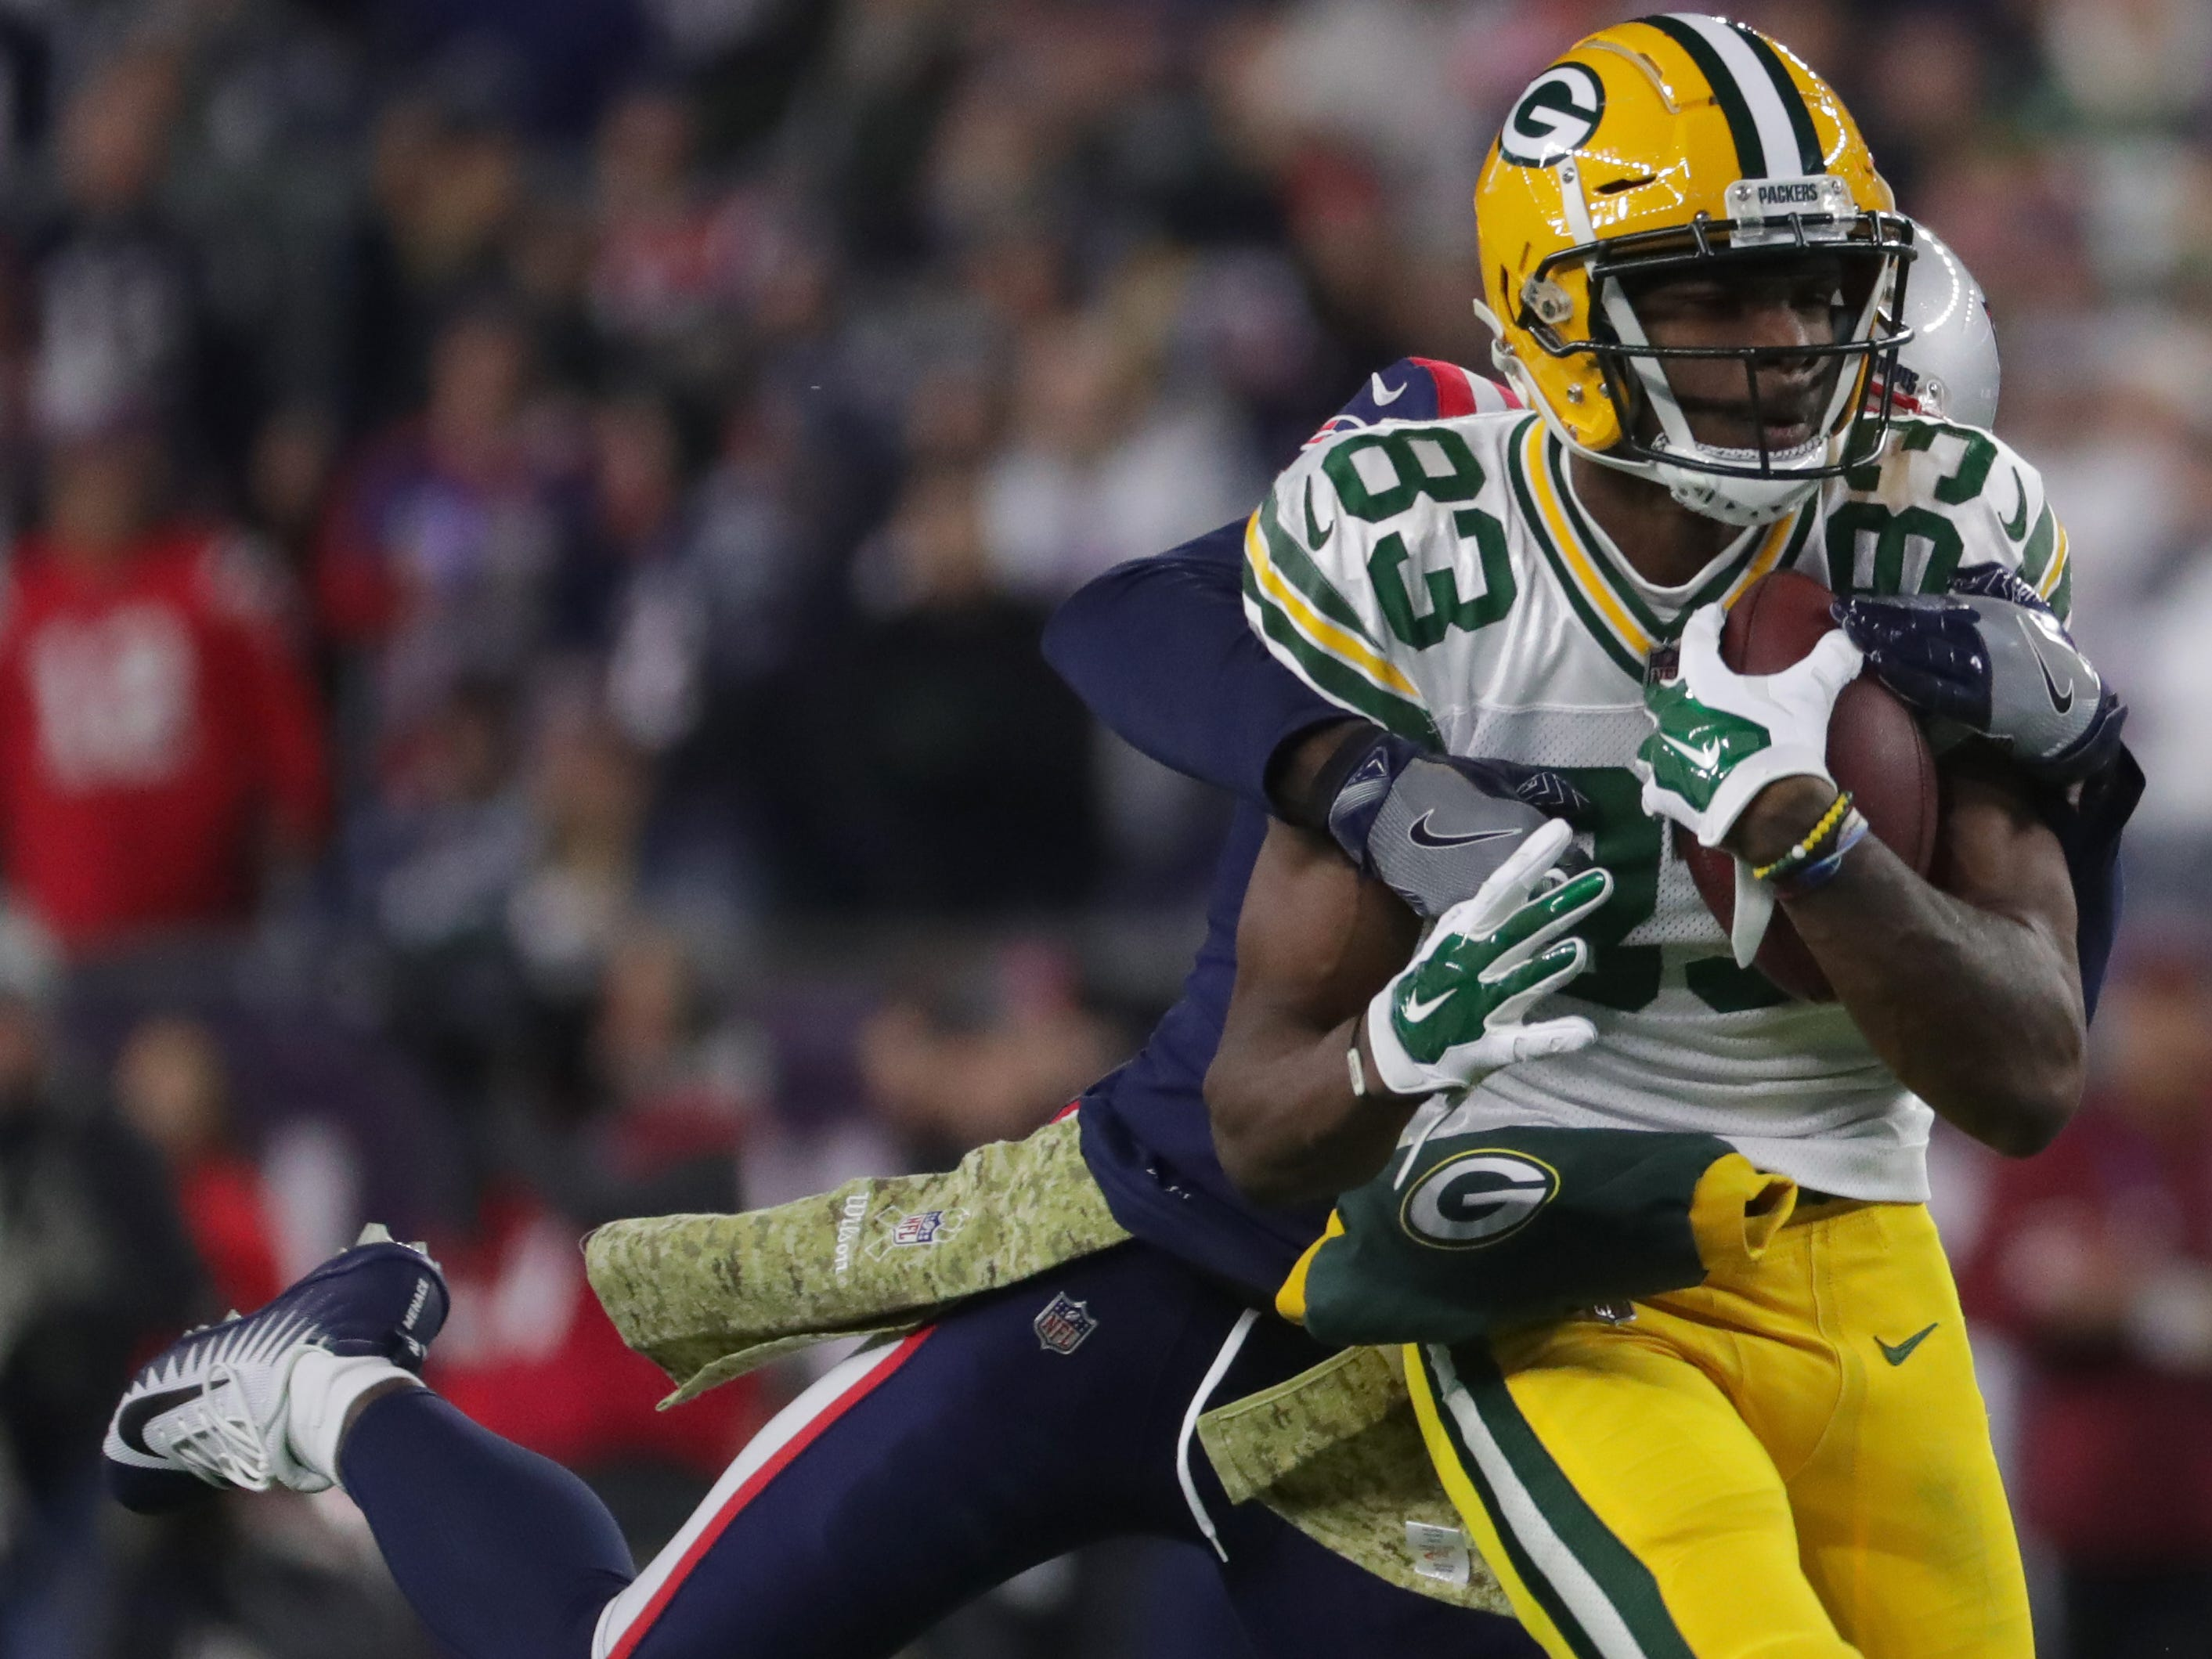 Green Bay Packers wide receiver Marquez Valdes-Scantling (83) is pursued New England Patriots linebacker Brandon King (36) while picking up 51 yards on a reception during the third quarter of their game Sunday, November 4, 2018 at Gillette Stadium in Foxborough, Mass. The New England Patriots beat the Green Bay Packers 31-17.